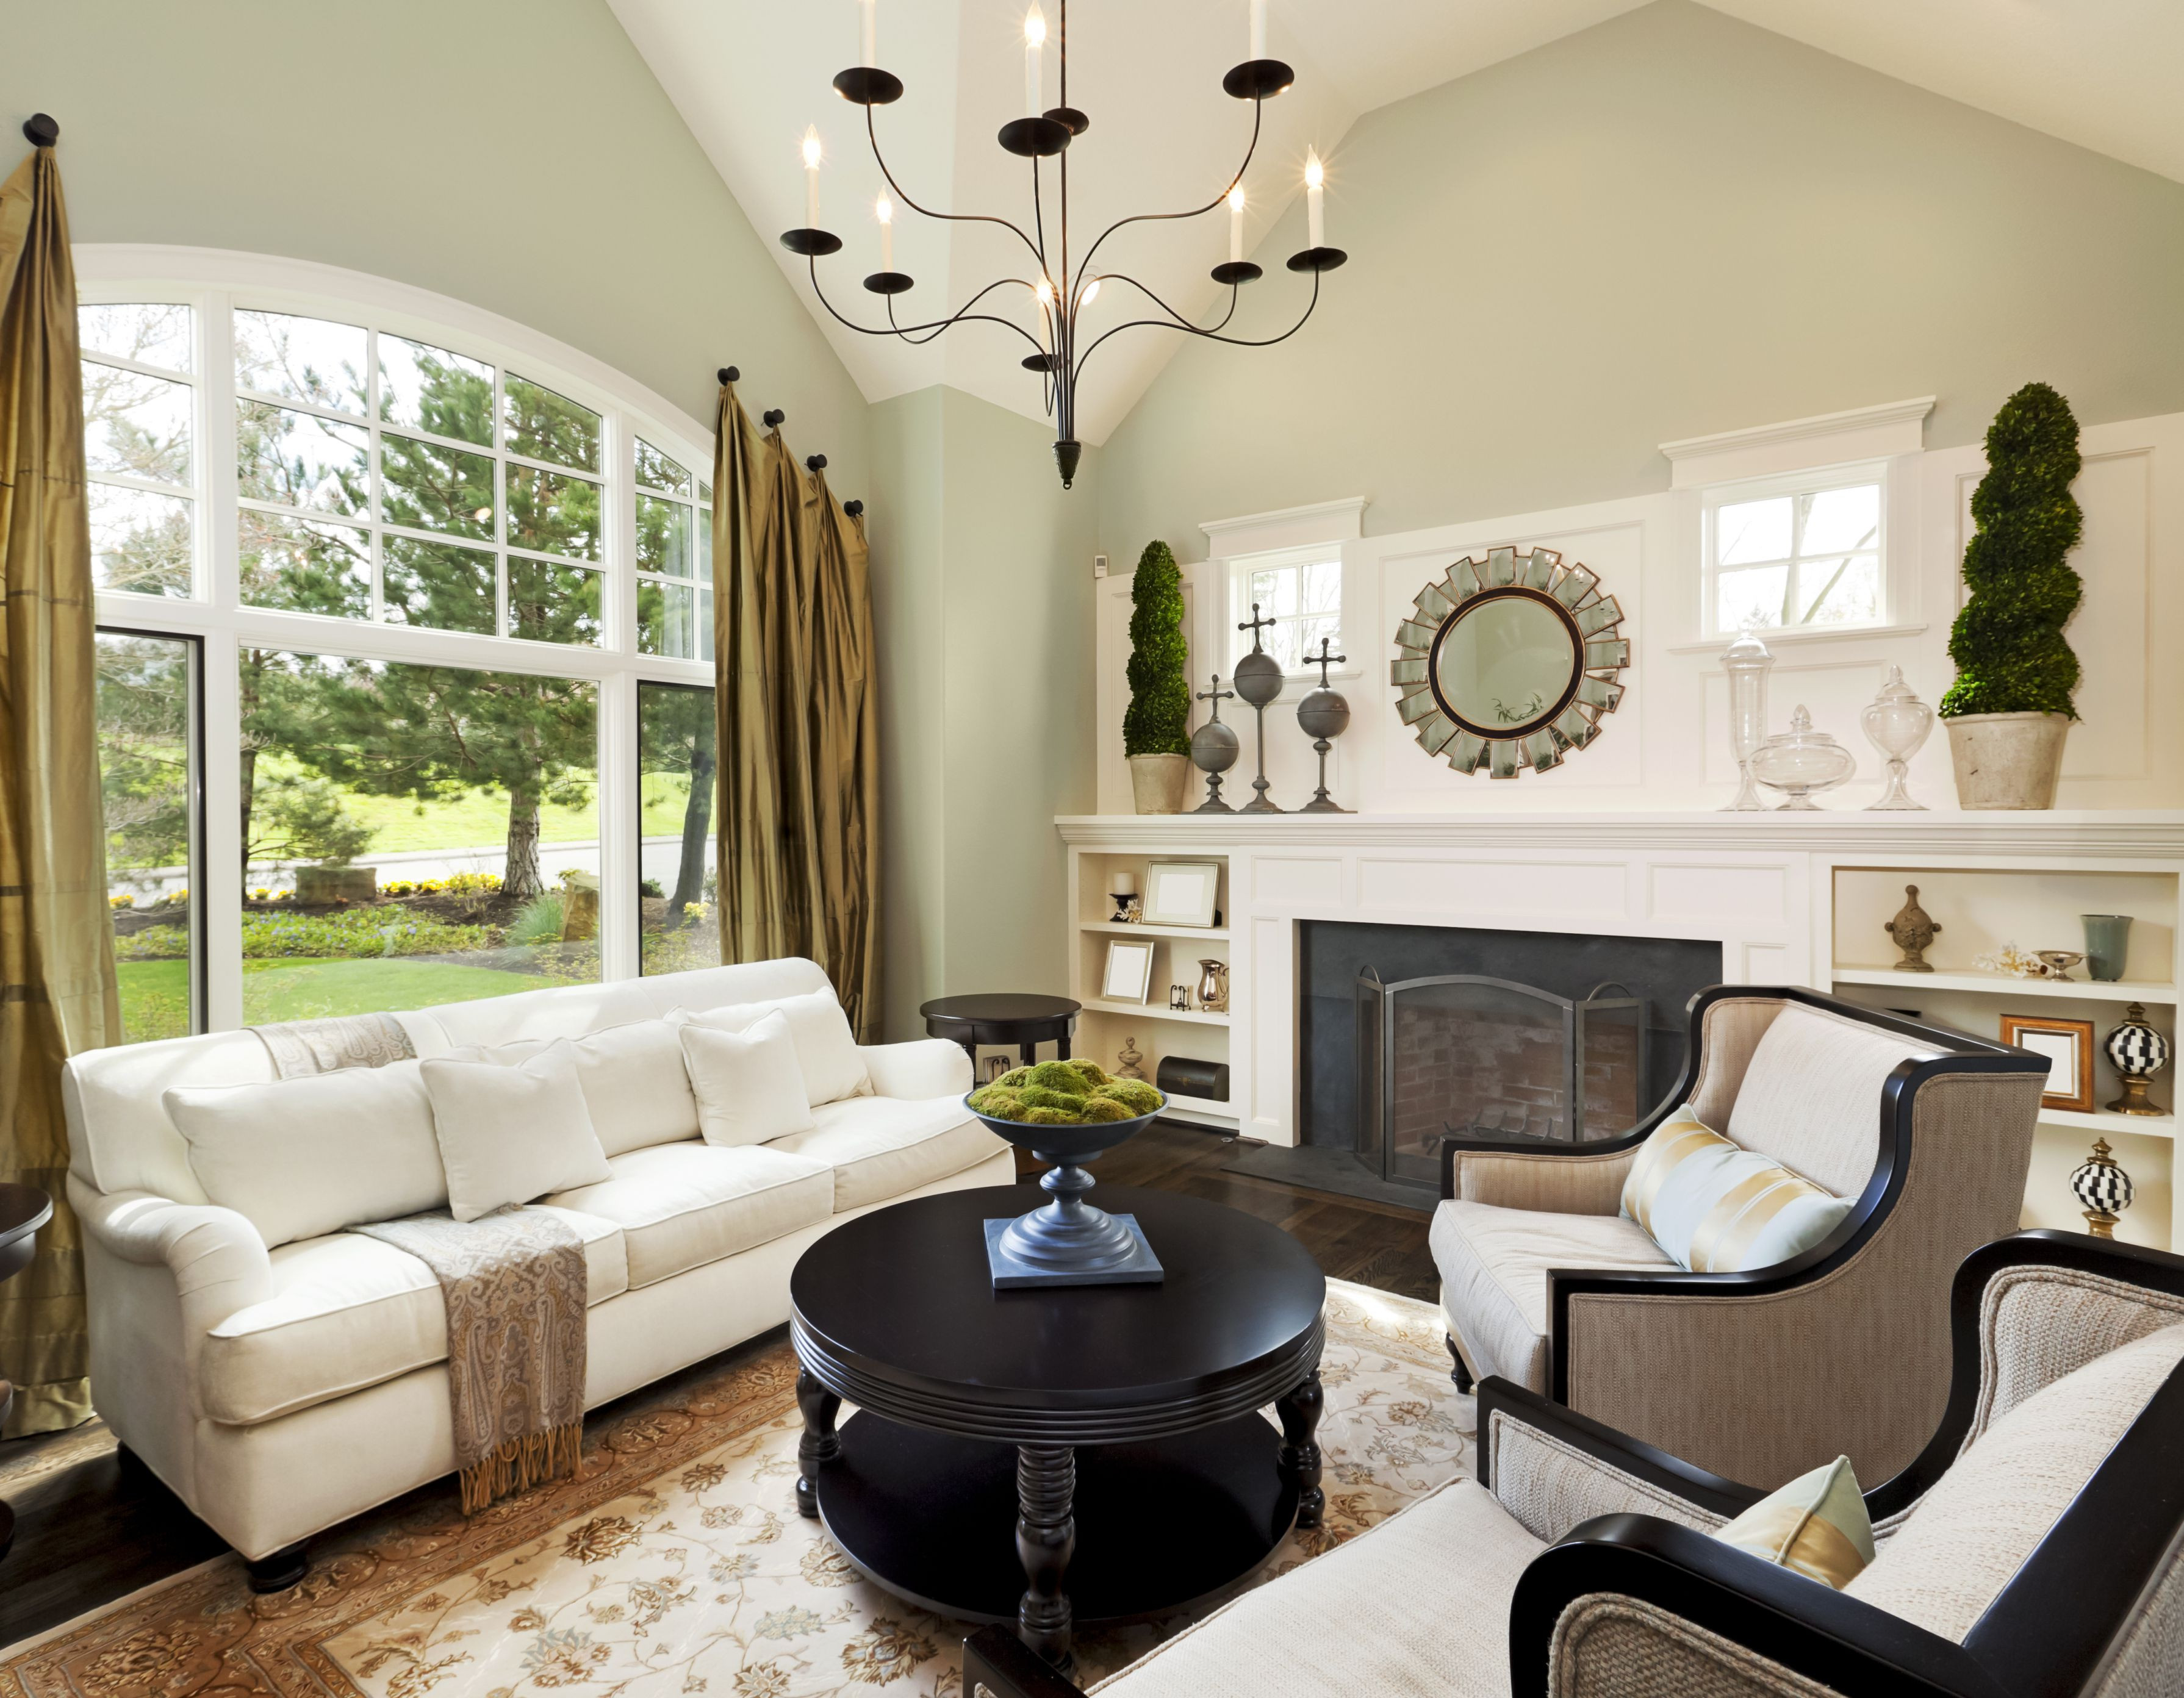 Best ideas about Decor For Living Room . Save or Pin The Beginner s Guide to Decorating Living Rooms Now.